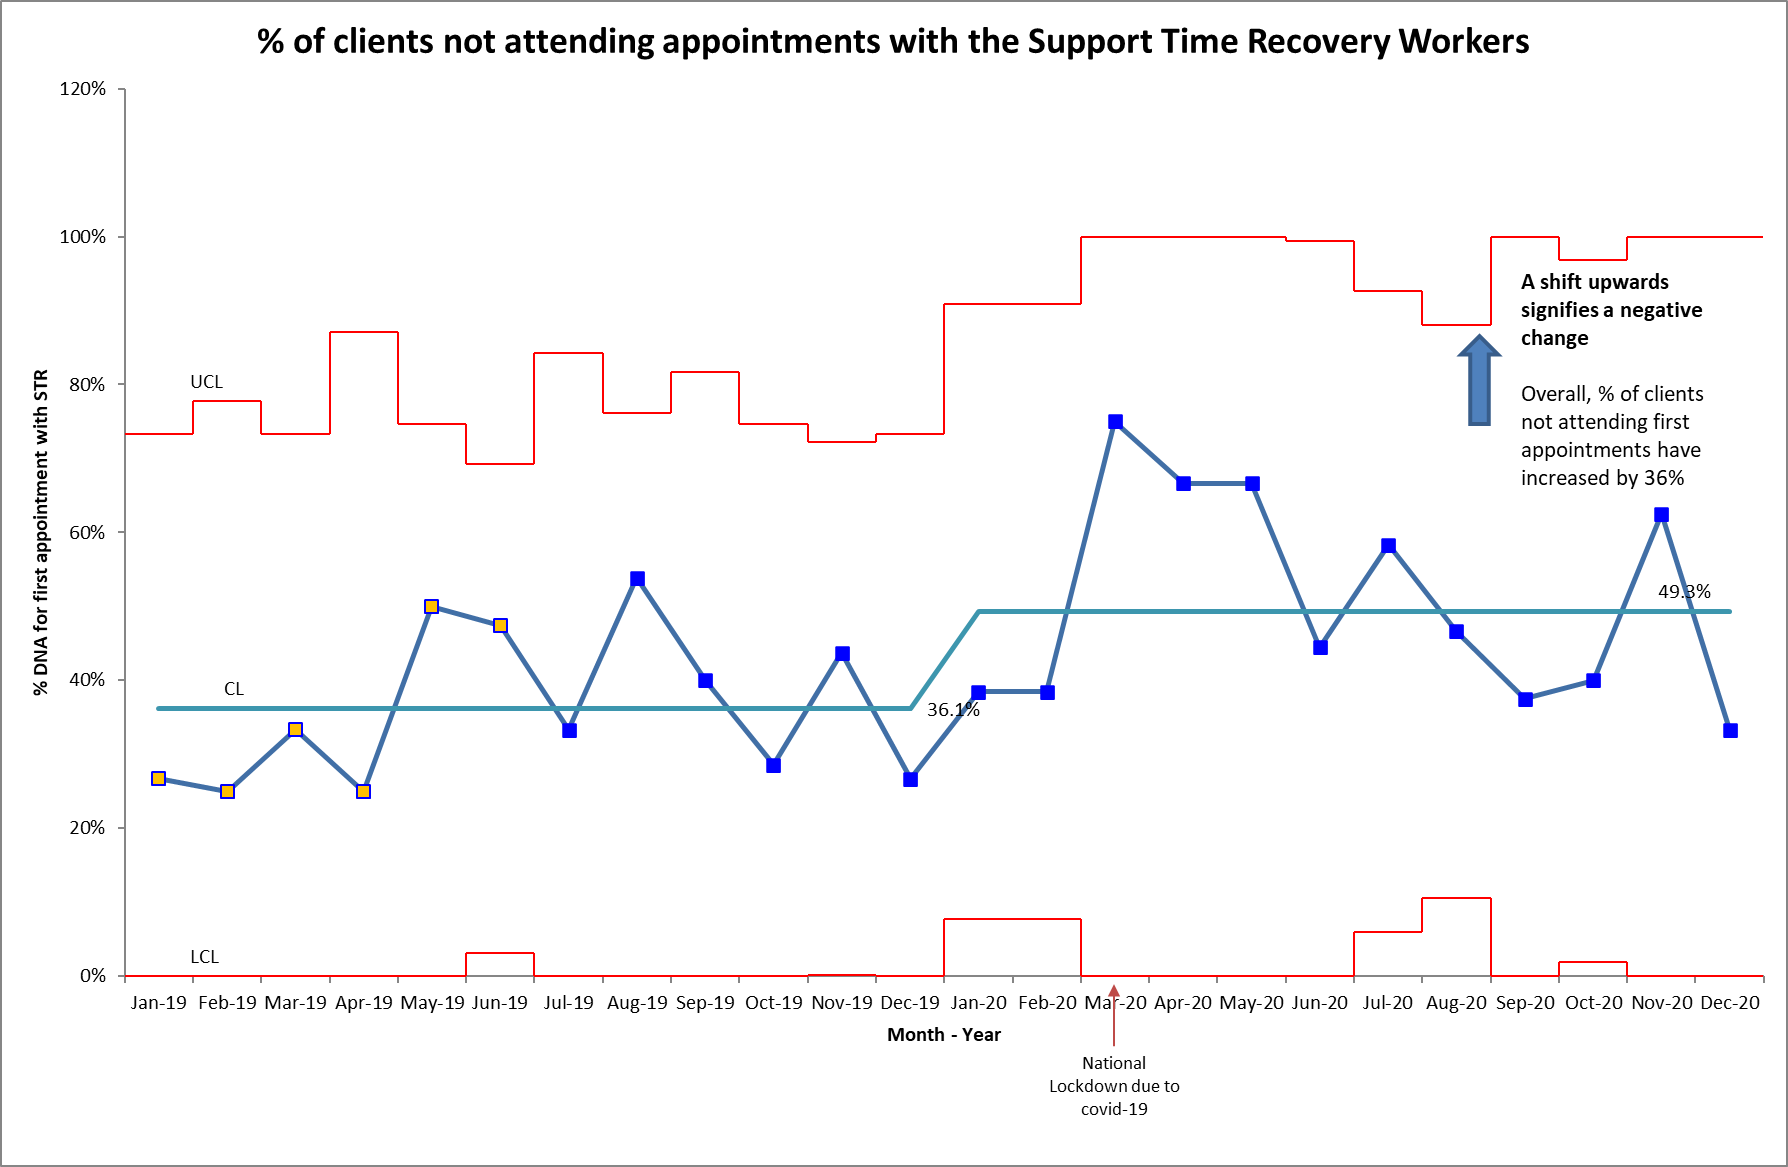 Percentage of clients not attending appointments with the Support Time Recovery Workers